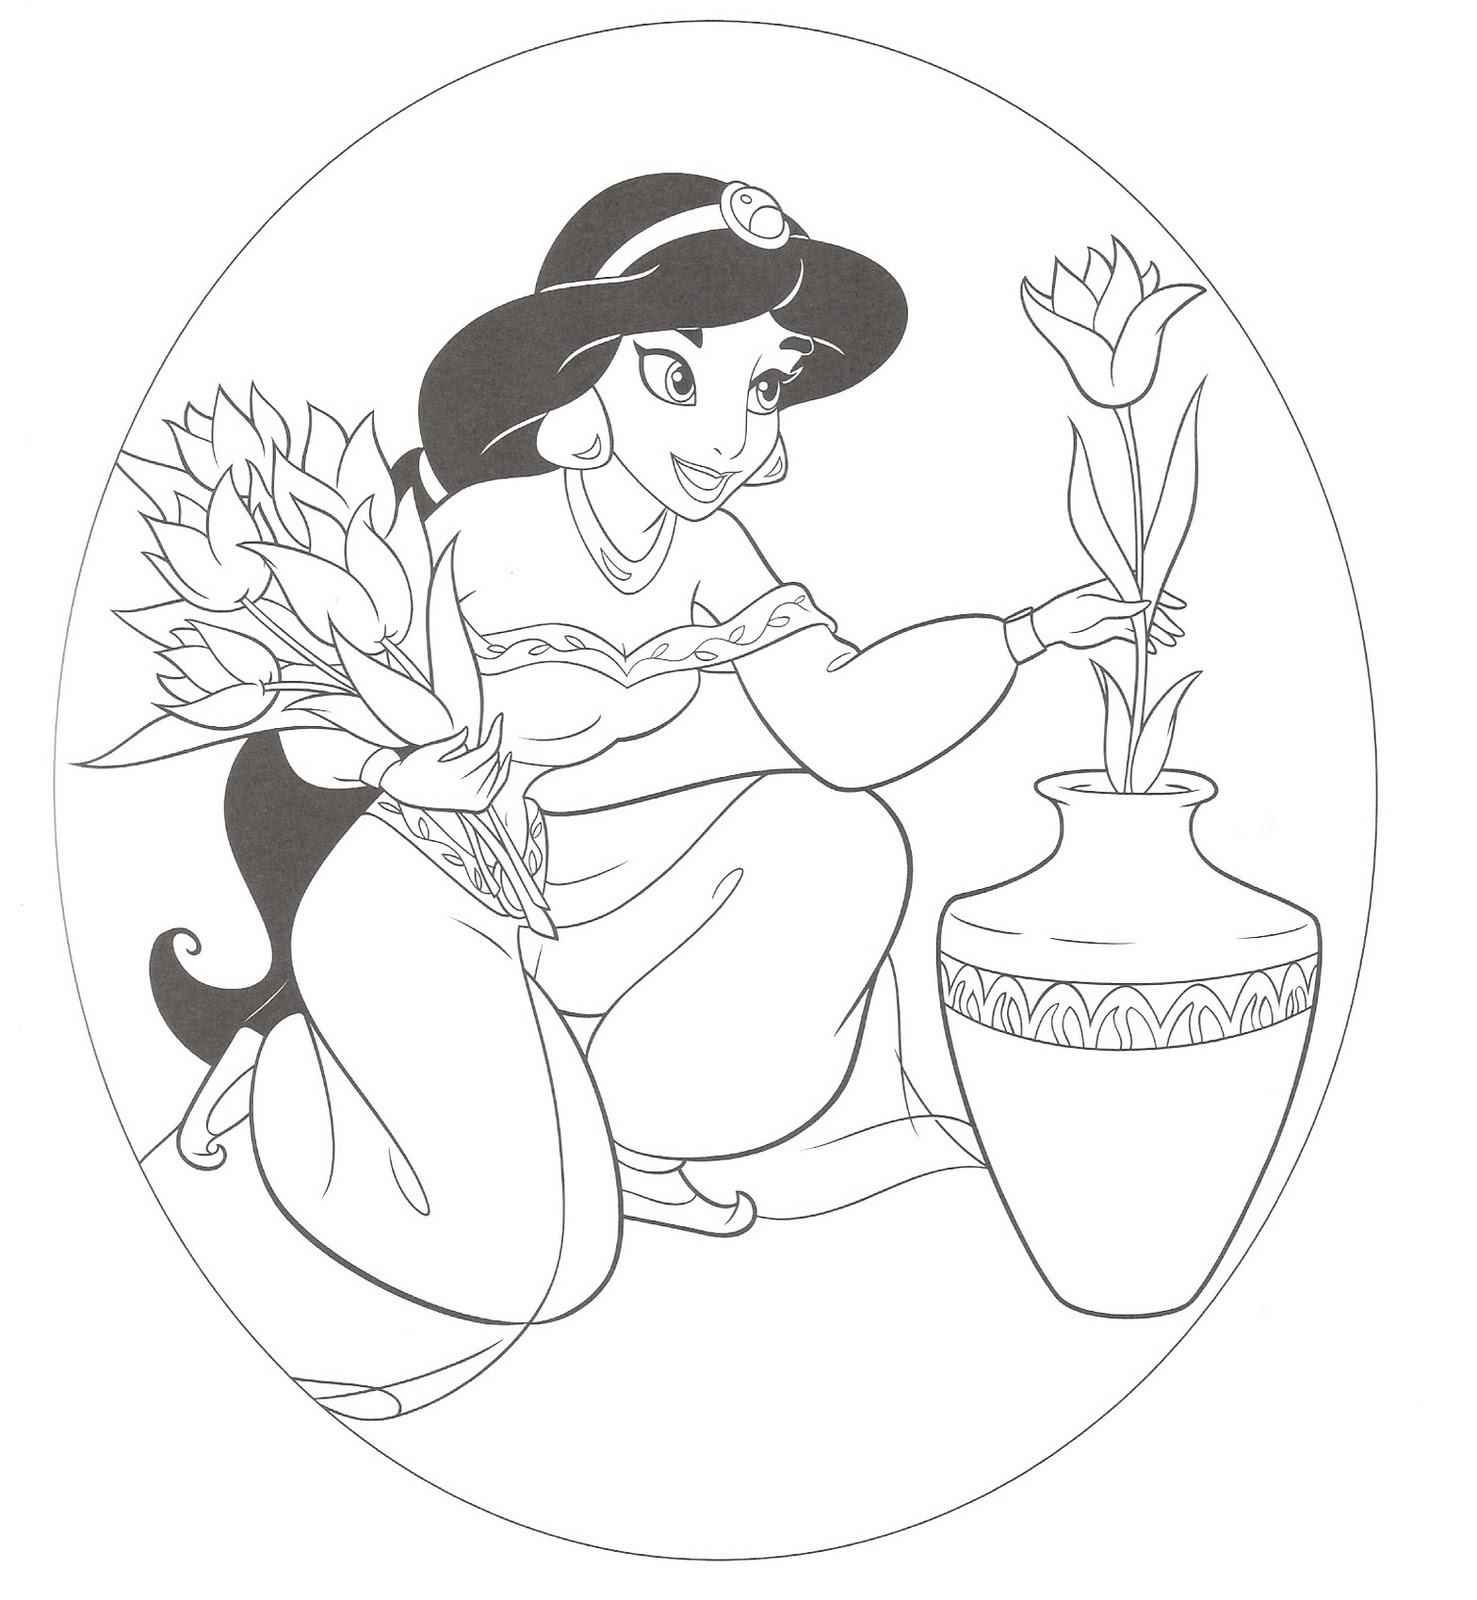 Disney Princess Coloring Pages For Kids Ariel Princess Coloring Page Free Coloring Sheets